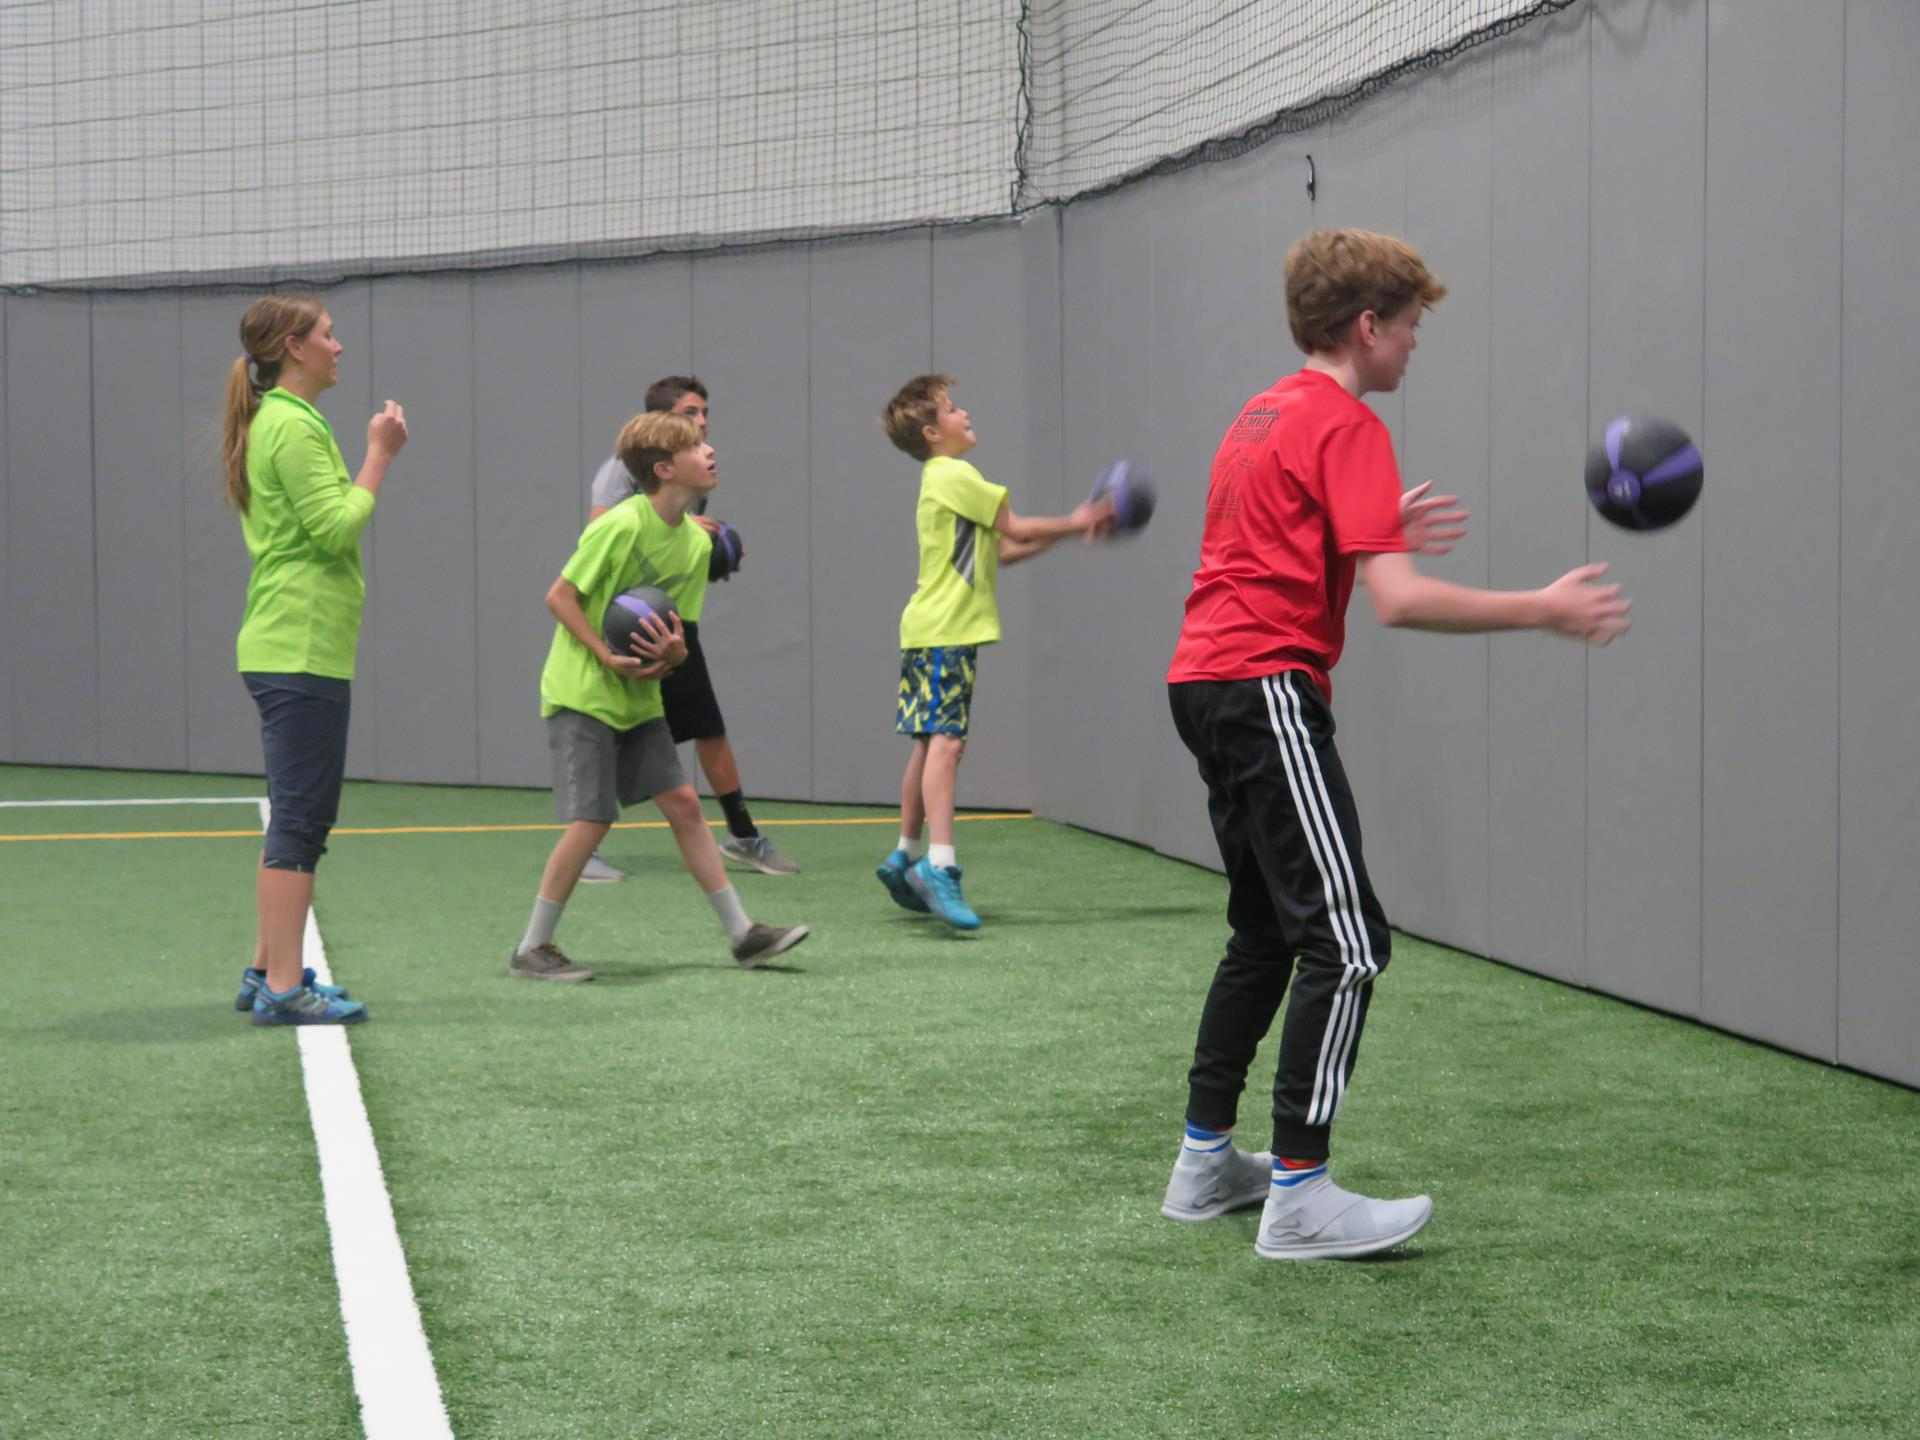 Teen boys and trainer excercising with medicine balls in turf gym